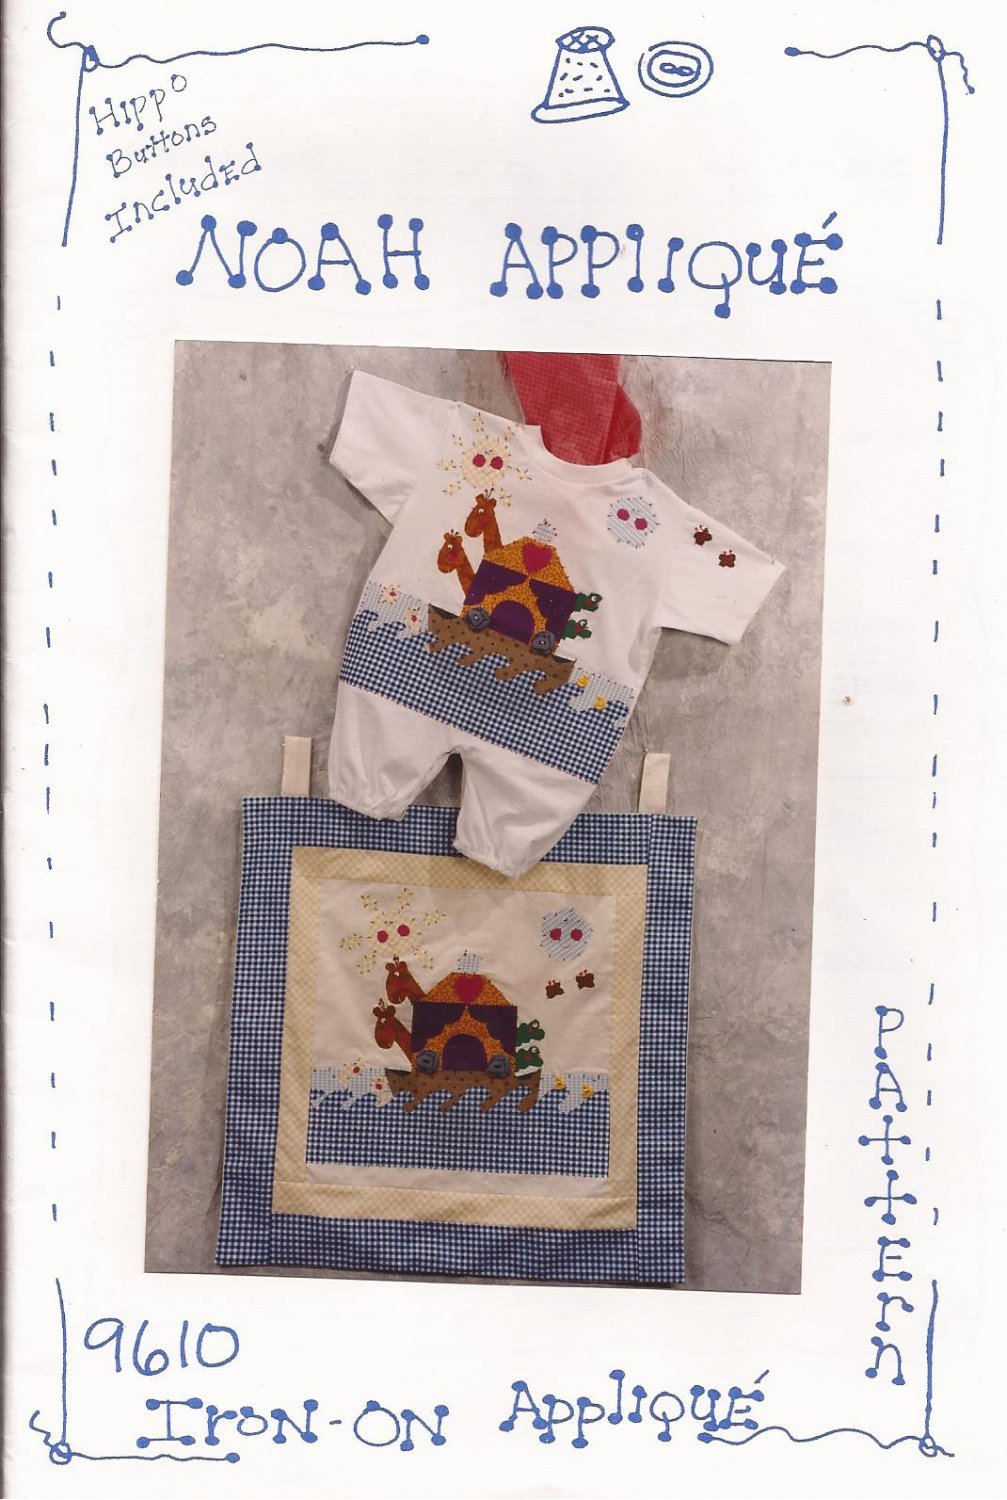 Alice & Her Mother Noah Iron-On Applique Pattern 9610 UNCUT